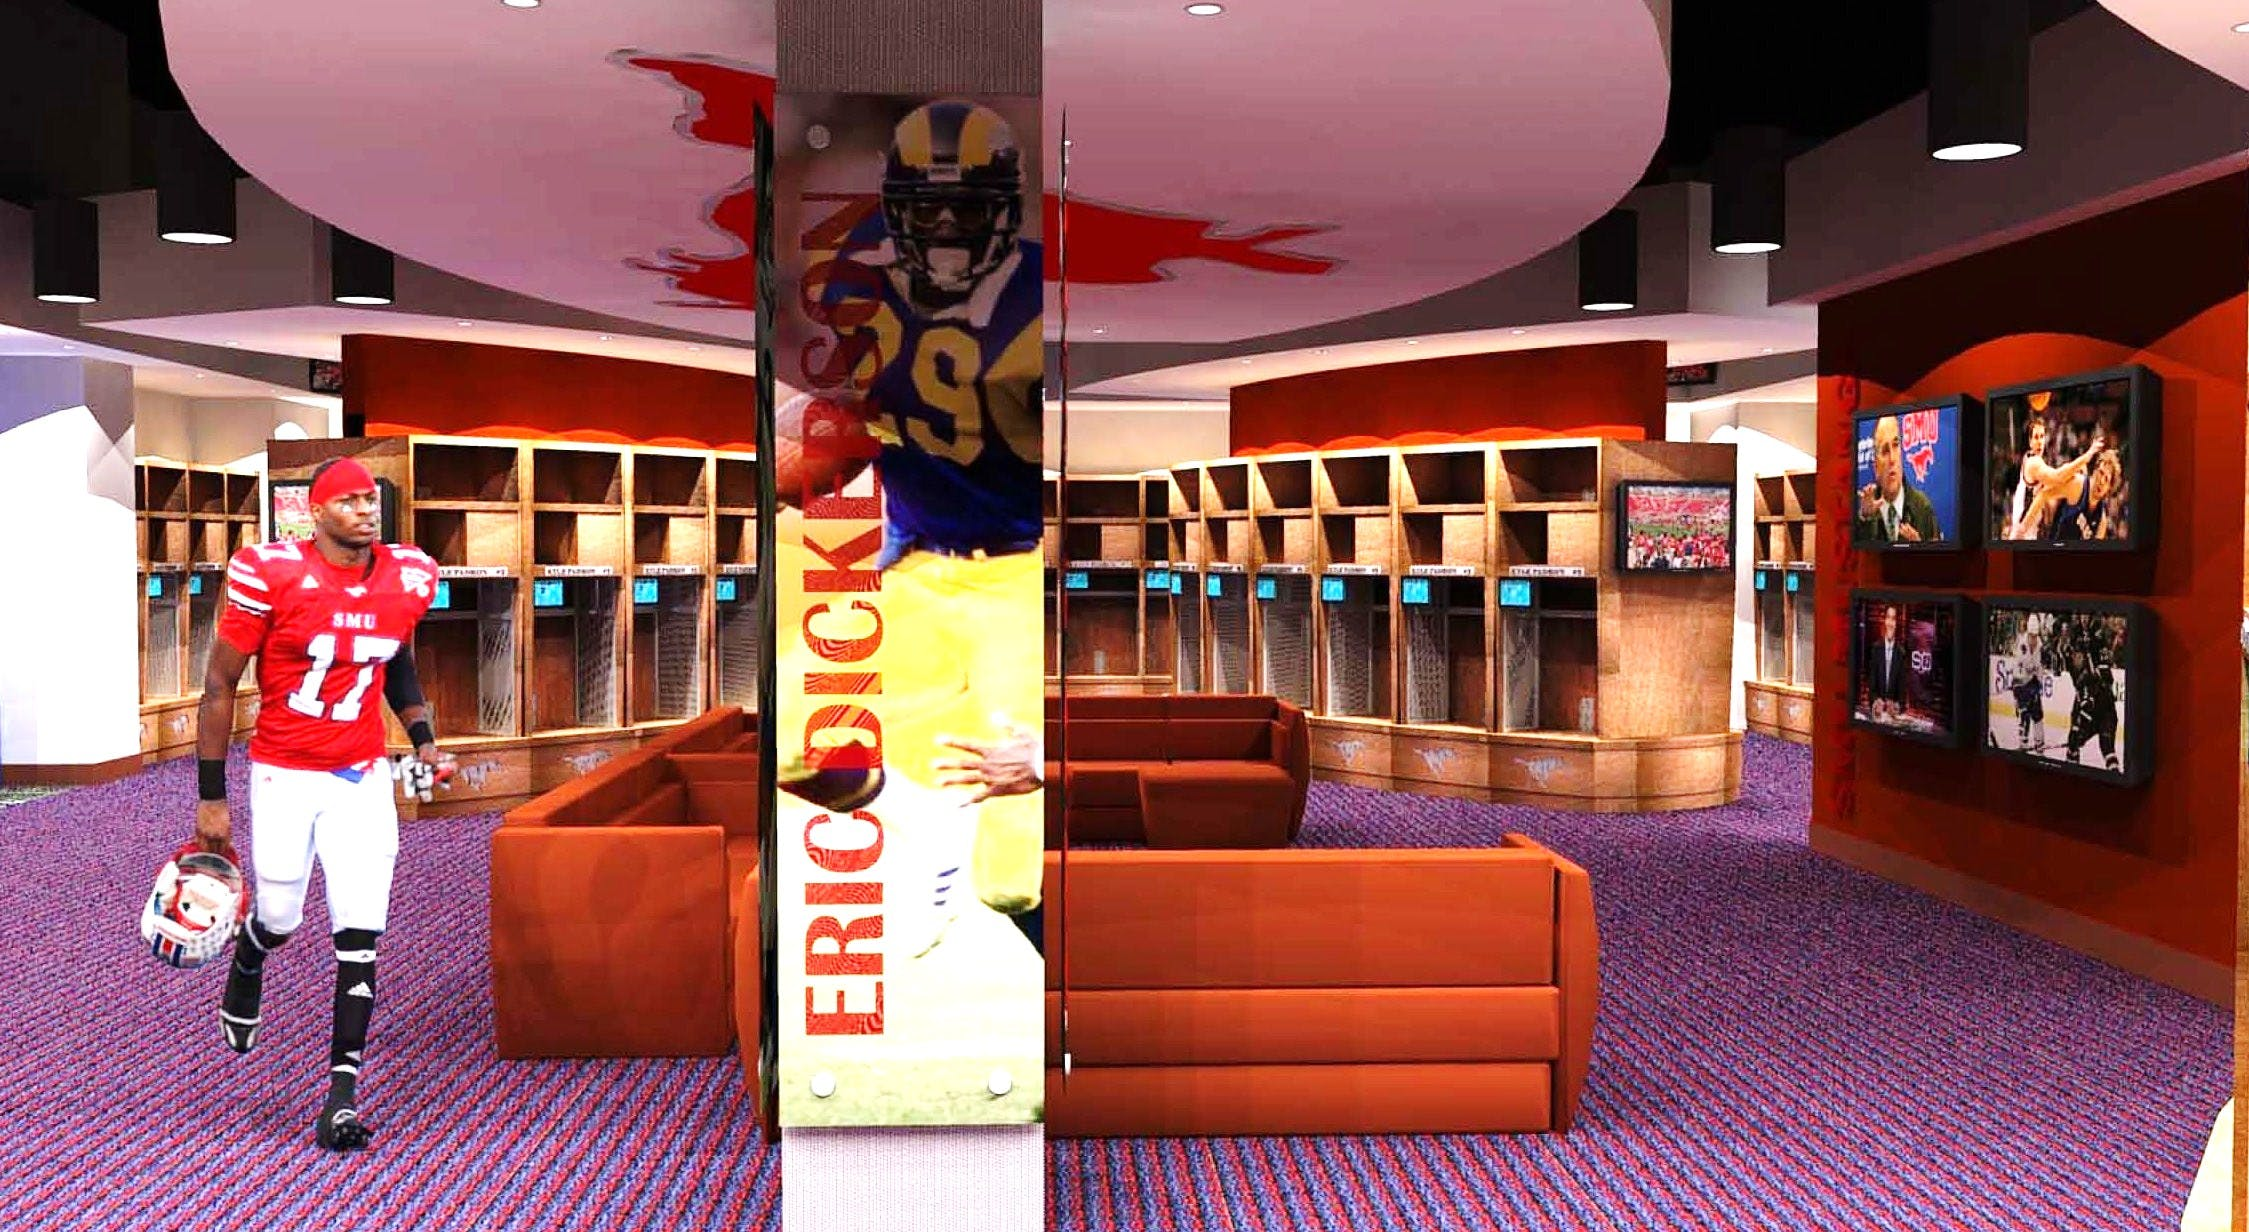 Colleges In Ct >> SMU Ford Field Football Locker Room Renovation   J Michael Anderson   Archinect